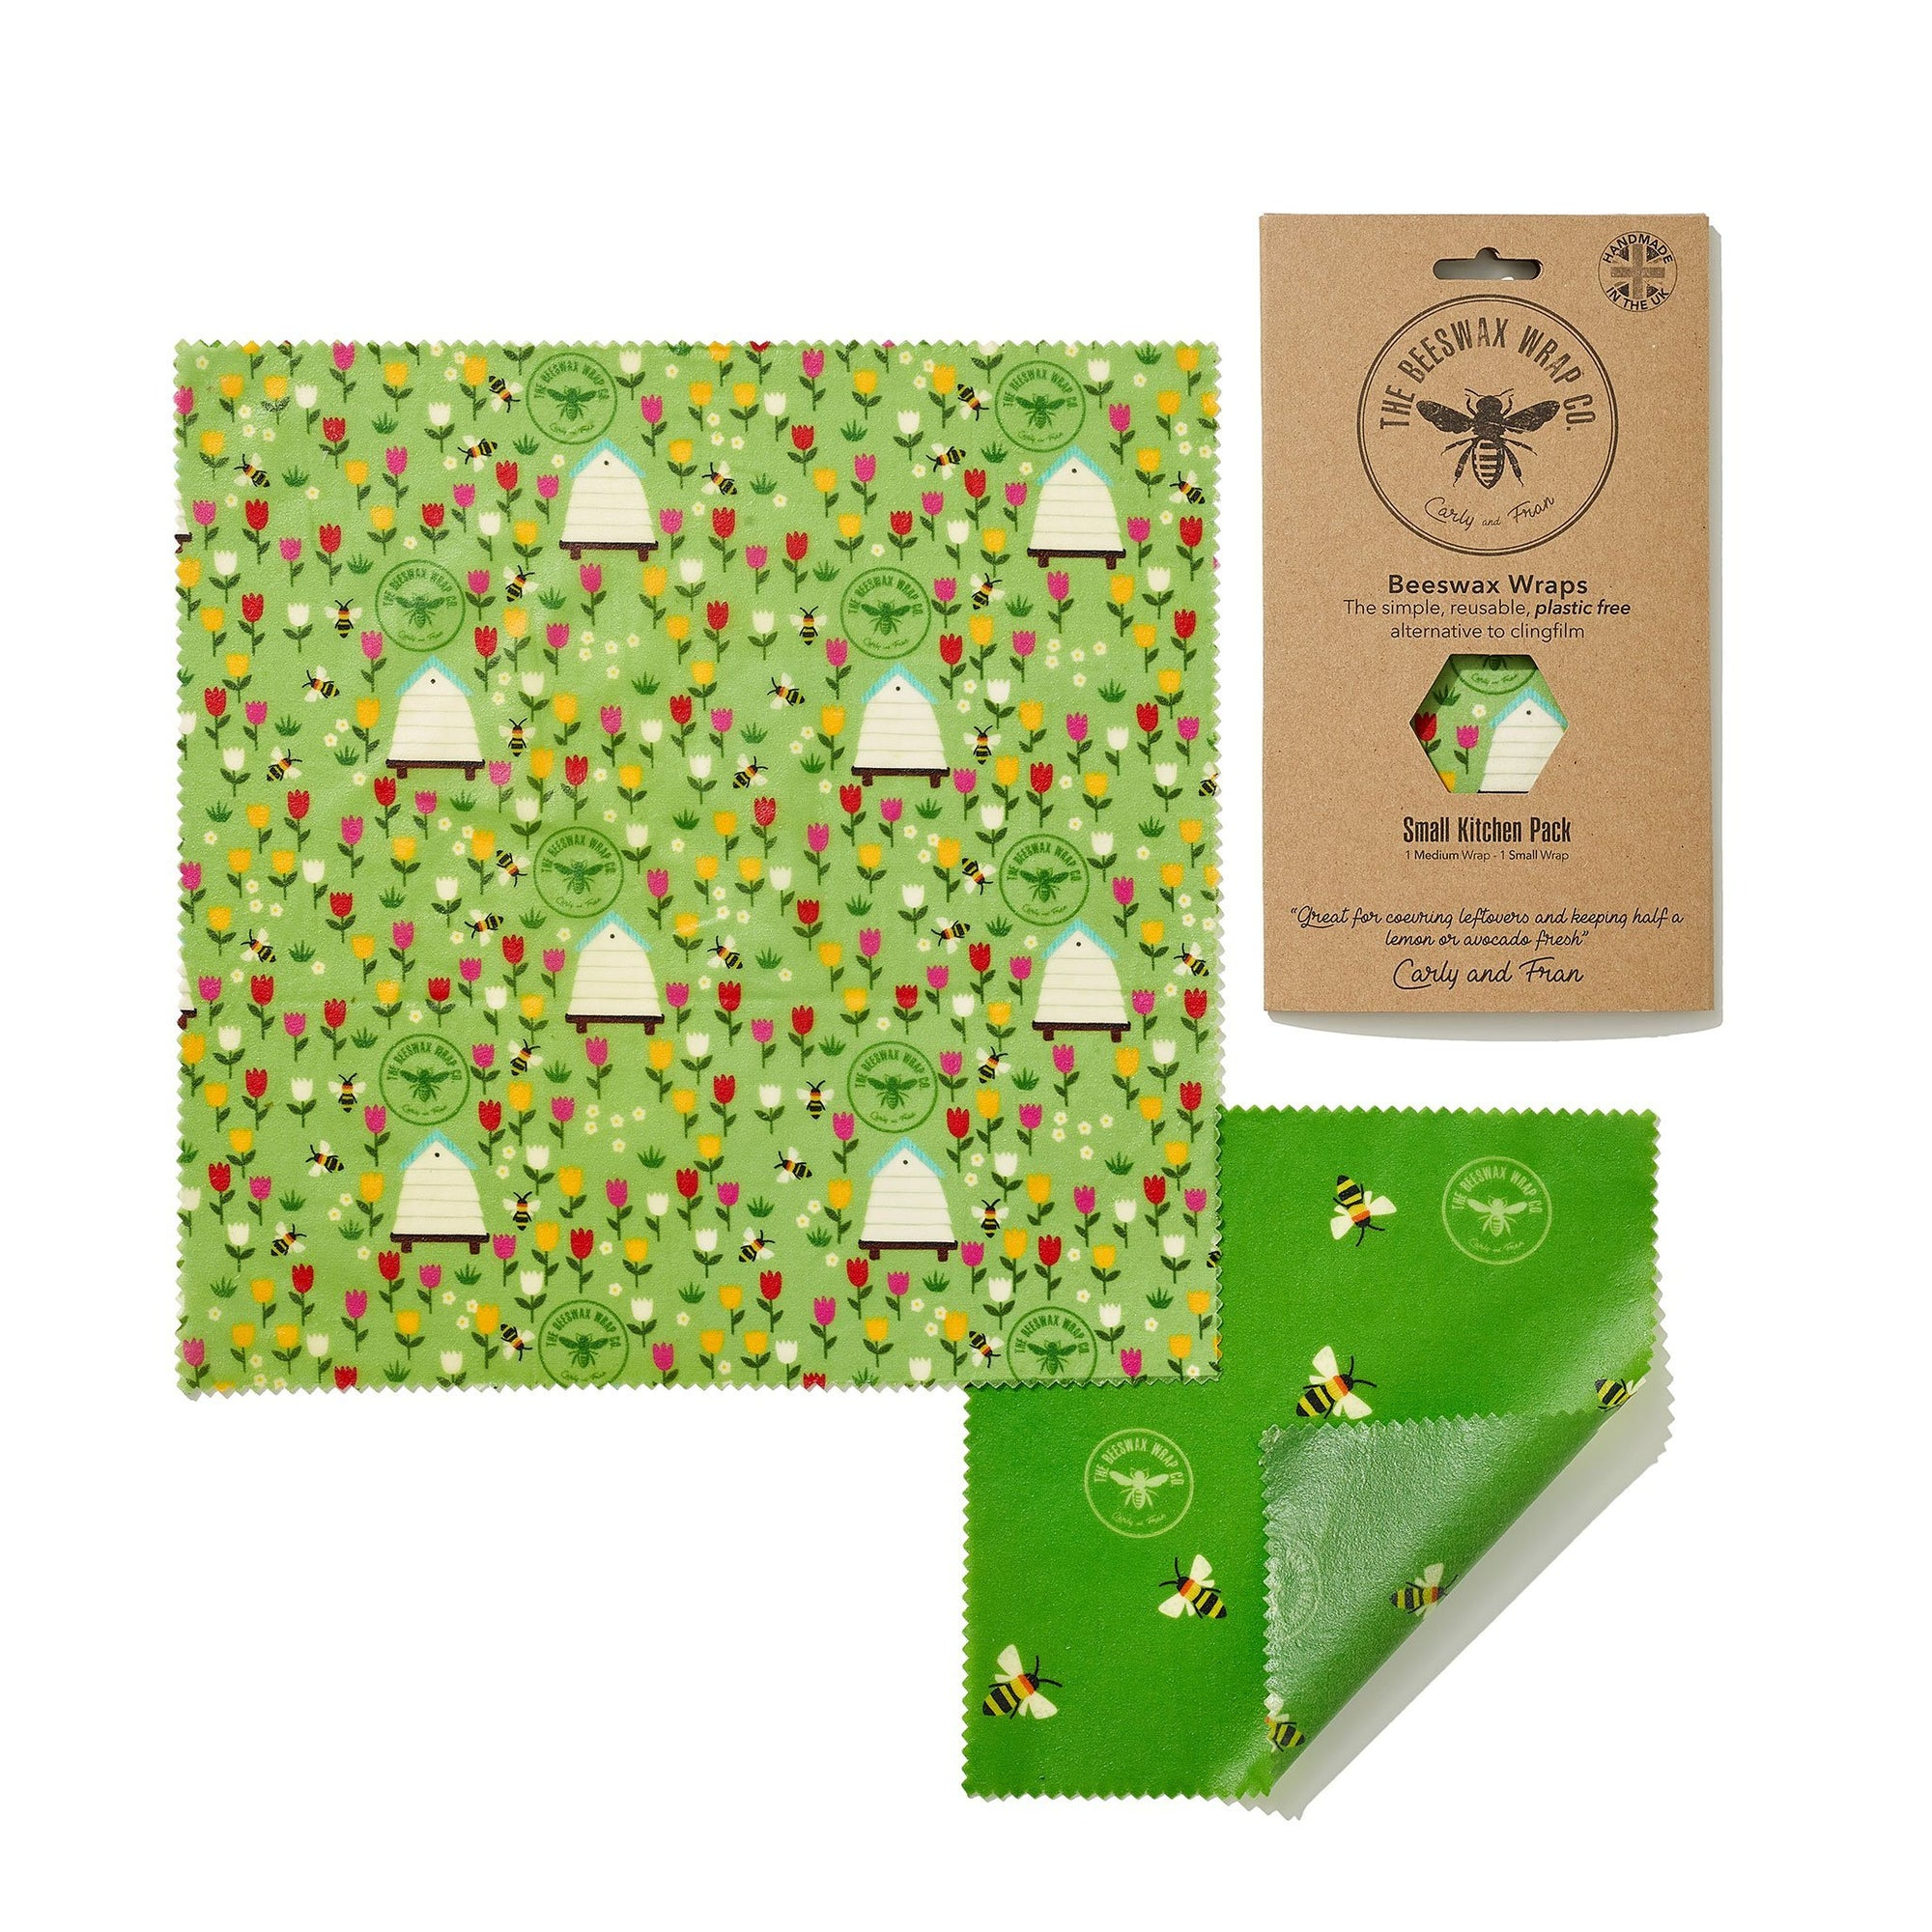 Beeswax Food Wrap - Small Kitchen Pack - Land Design | Food Wrap - The Naughty Shrew